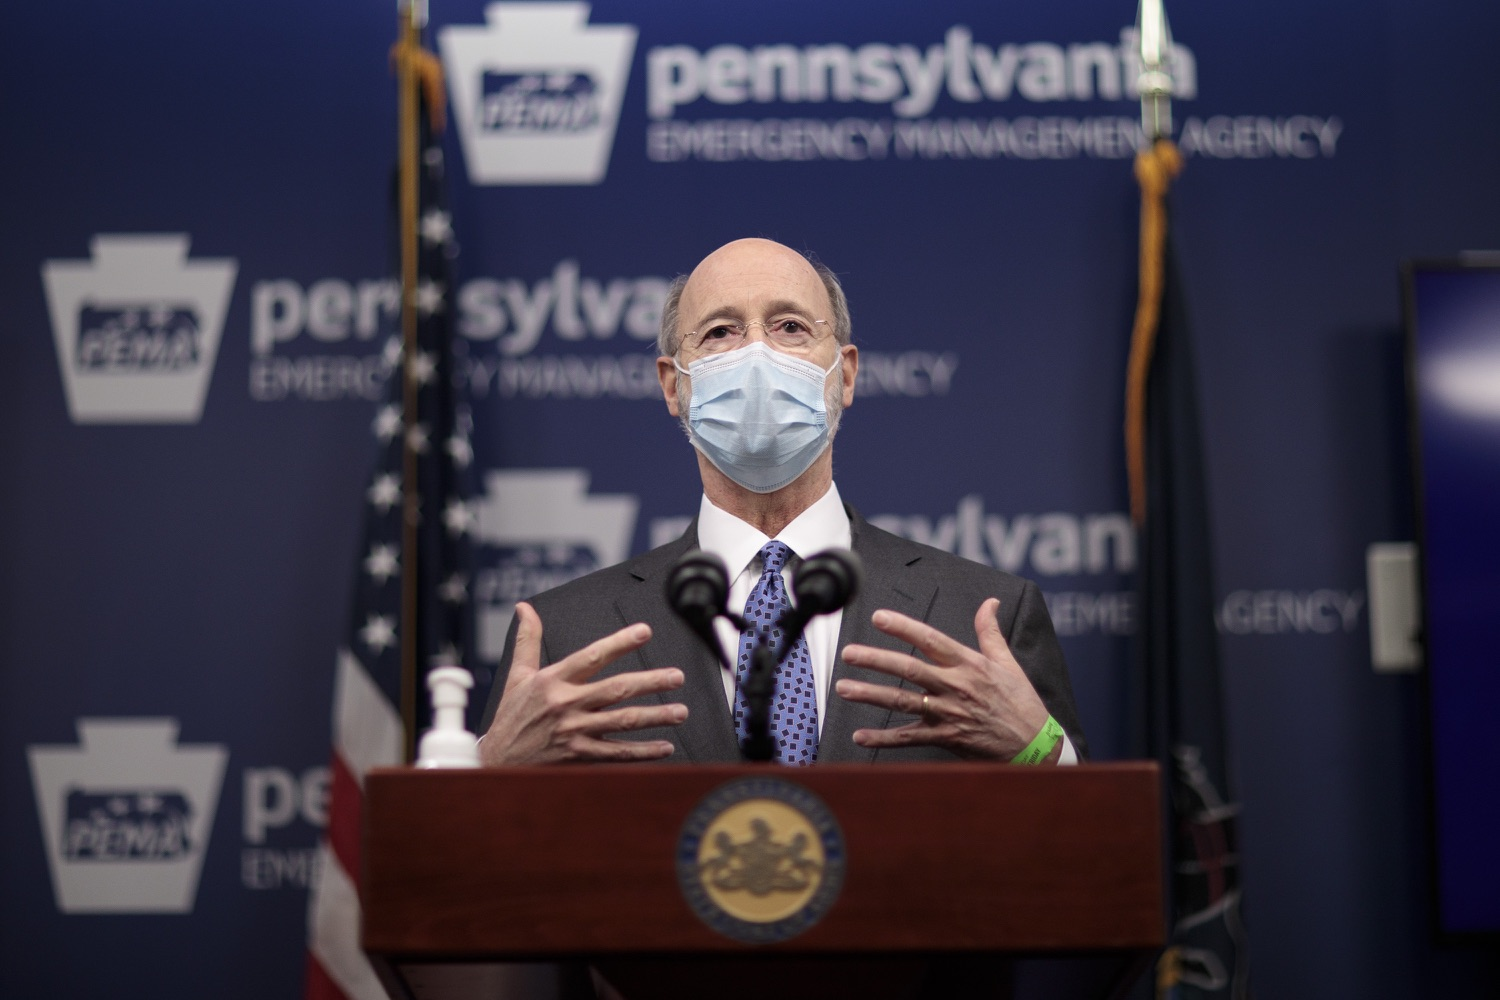 "<a href=""https://filesource.wostreaming.net/commonwealthofpa/photo/18472_gov_vaccine_dz_07.jpg"" target=""_blank"">⇣ Download Photo<br></a>Pennsylvania Governor Tom Wolf speaks at the press conference.  The commonwealths COVID-19 vaccination distribution plan was designed to be fluid and flexible to meet guidance and recommendations from the federal government. Today, Governor Tom Wolf and Secretary of Health Dr. Rachel Levine announced the fourth version of the plan, detailing the updates and how the state is working to ensure safe, swift implementation. Harrisburg, PA  January 8, 2021"